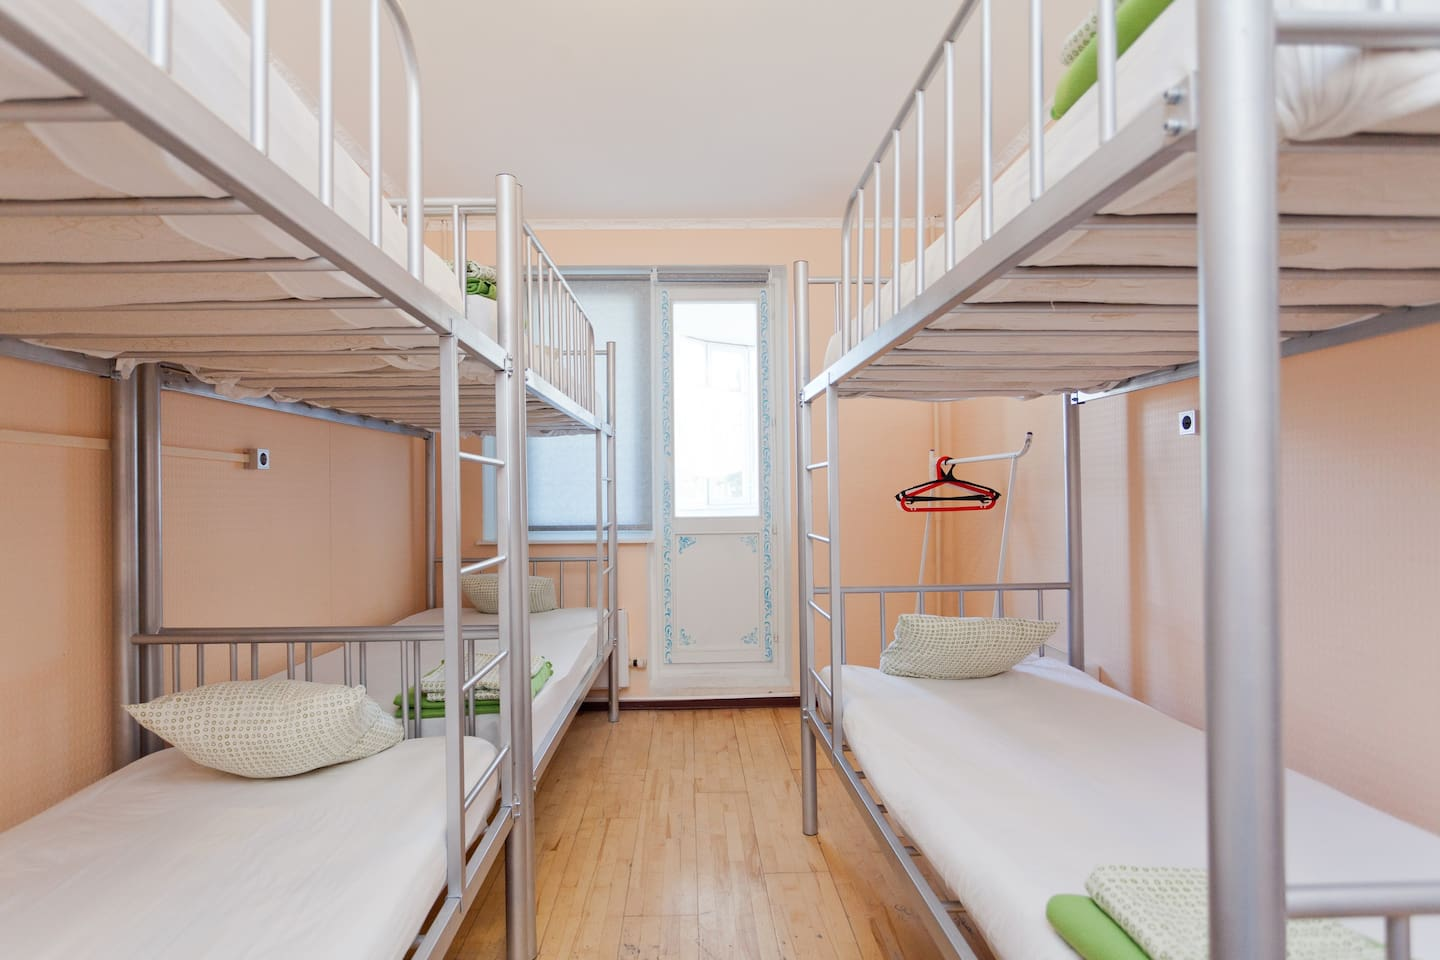 Beds in shared room, for GUYS, 6ppl